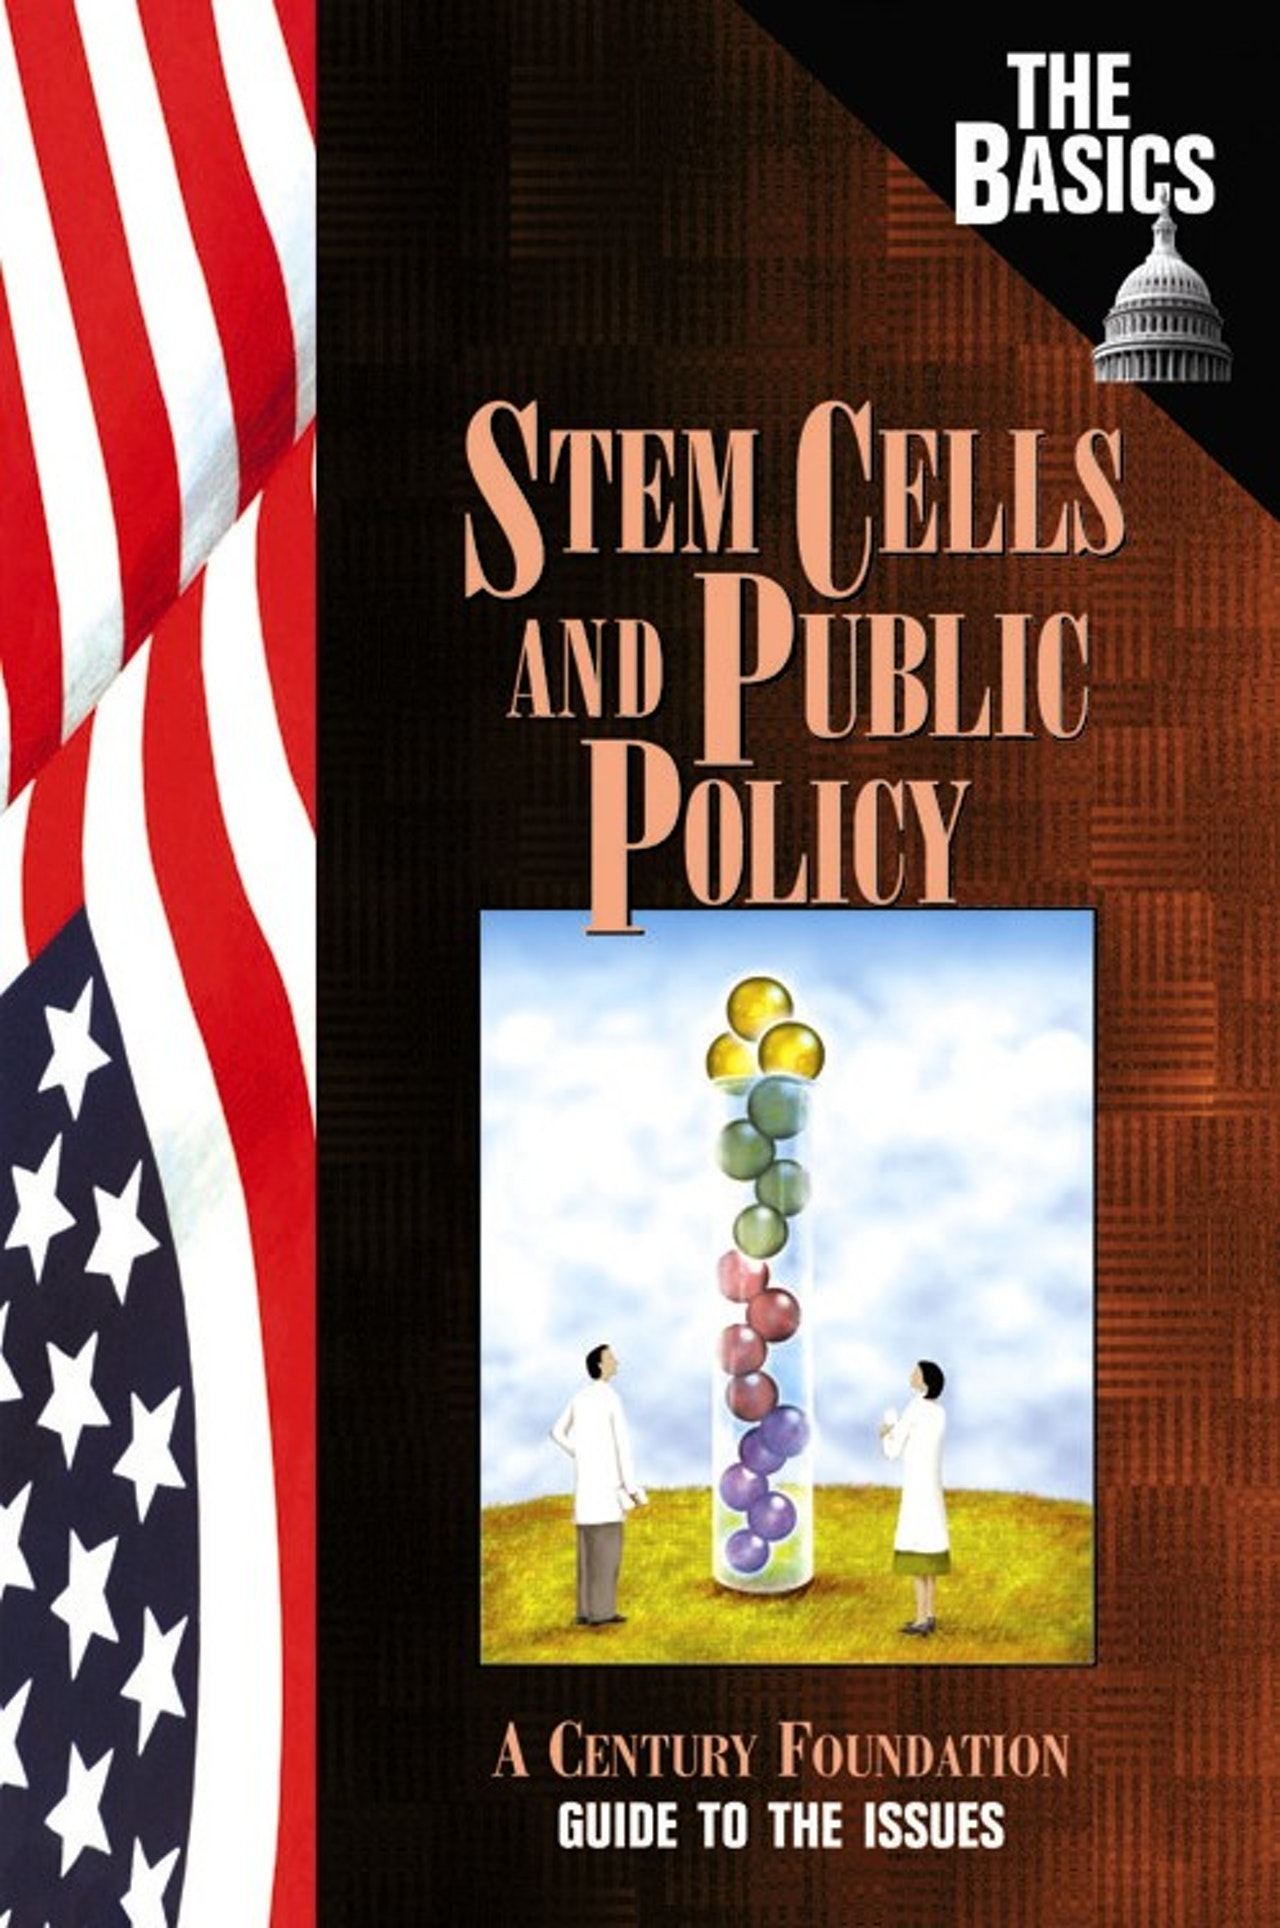 social ethical and political issues raised by the use of human embryos for research using stem cells Moral issues surrounding the sources of stem cells at present, there are three possible sources of stem cells: adult stem cells derived from pediatric or adult donors embryo germ cell stem cells derived from aborted fetuses and embryonic stem cells () derived from disaggregated preimplantation embryosthe first of these sources poses no special ethical problems for the majority of people.